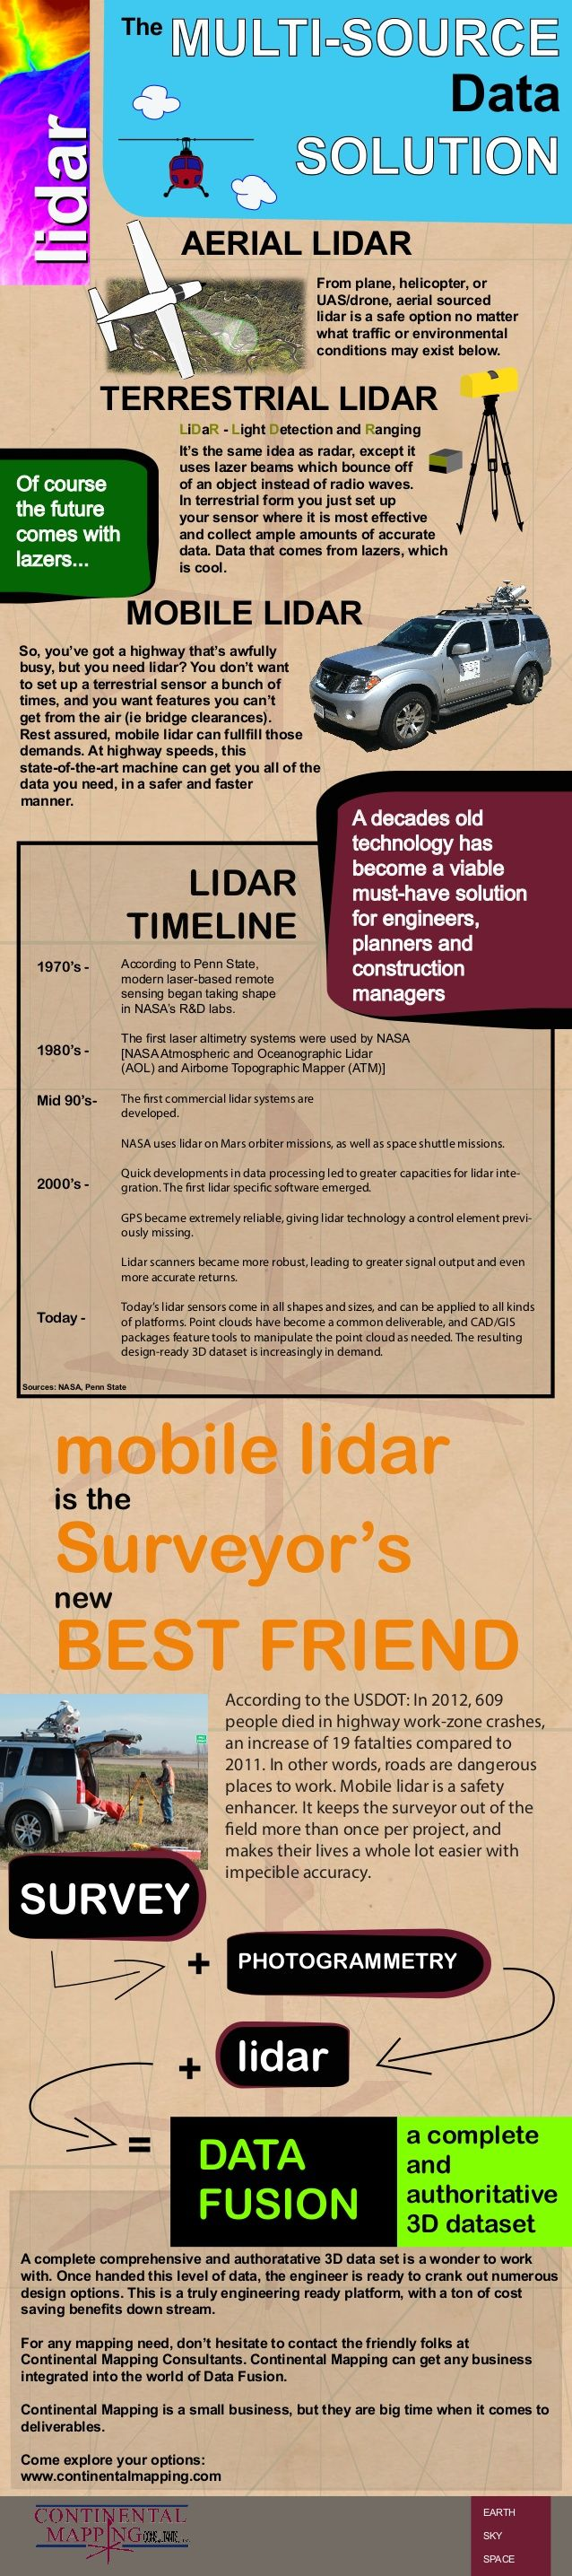 Lidar has risen to prominence in recent years...